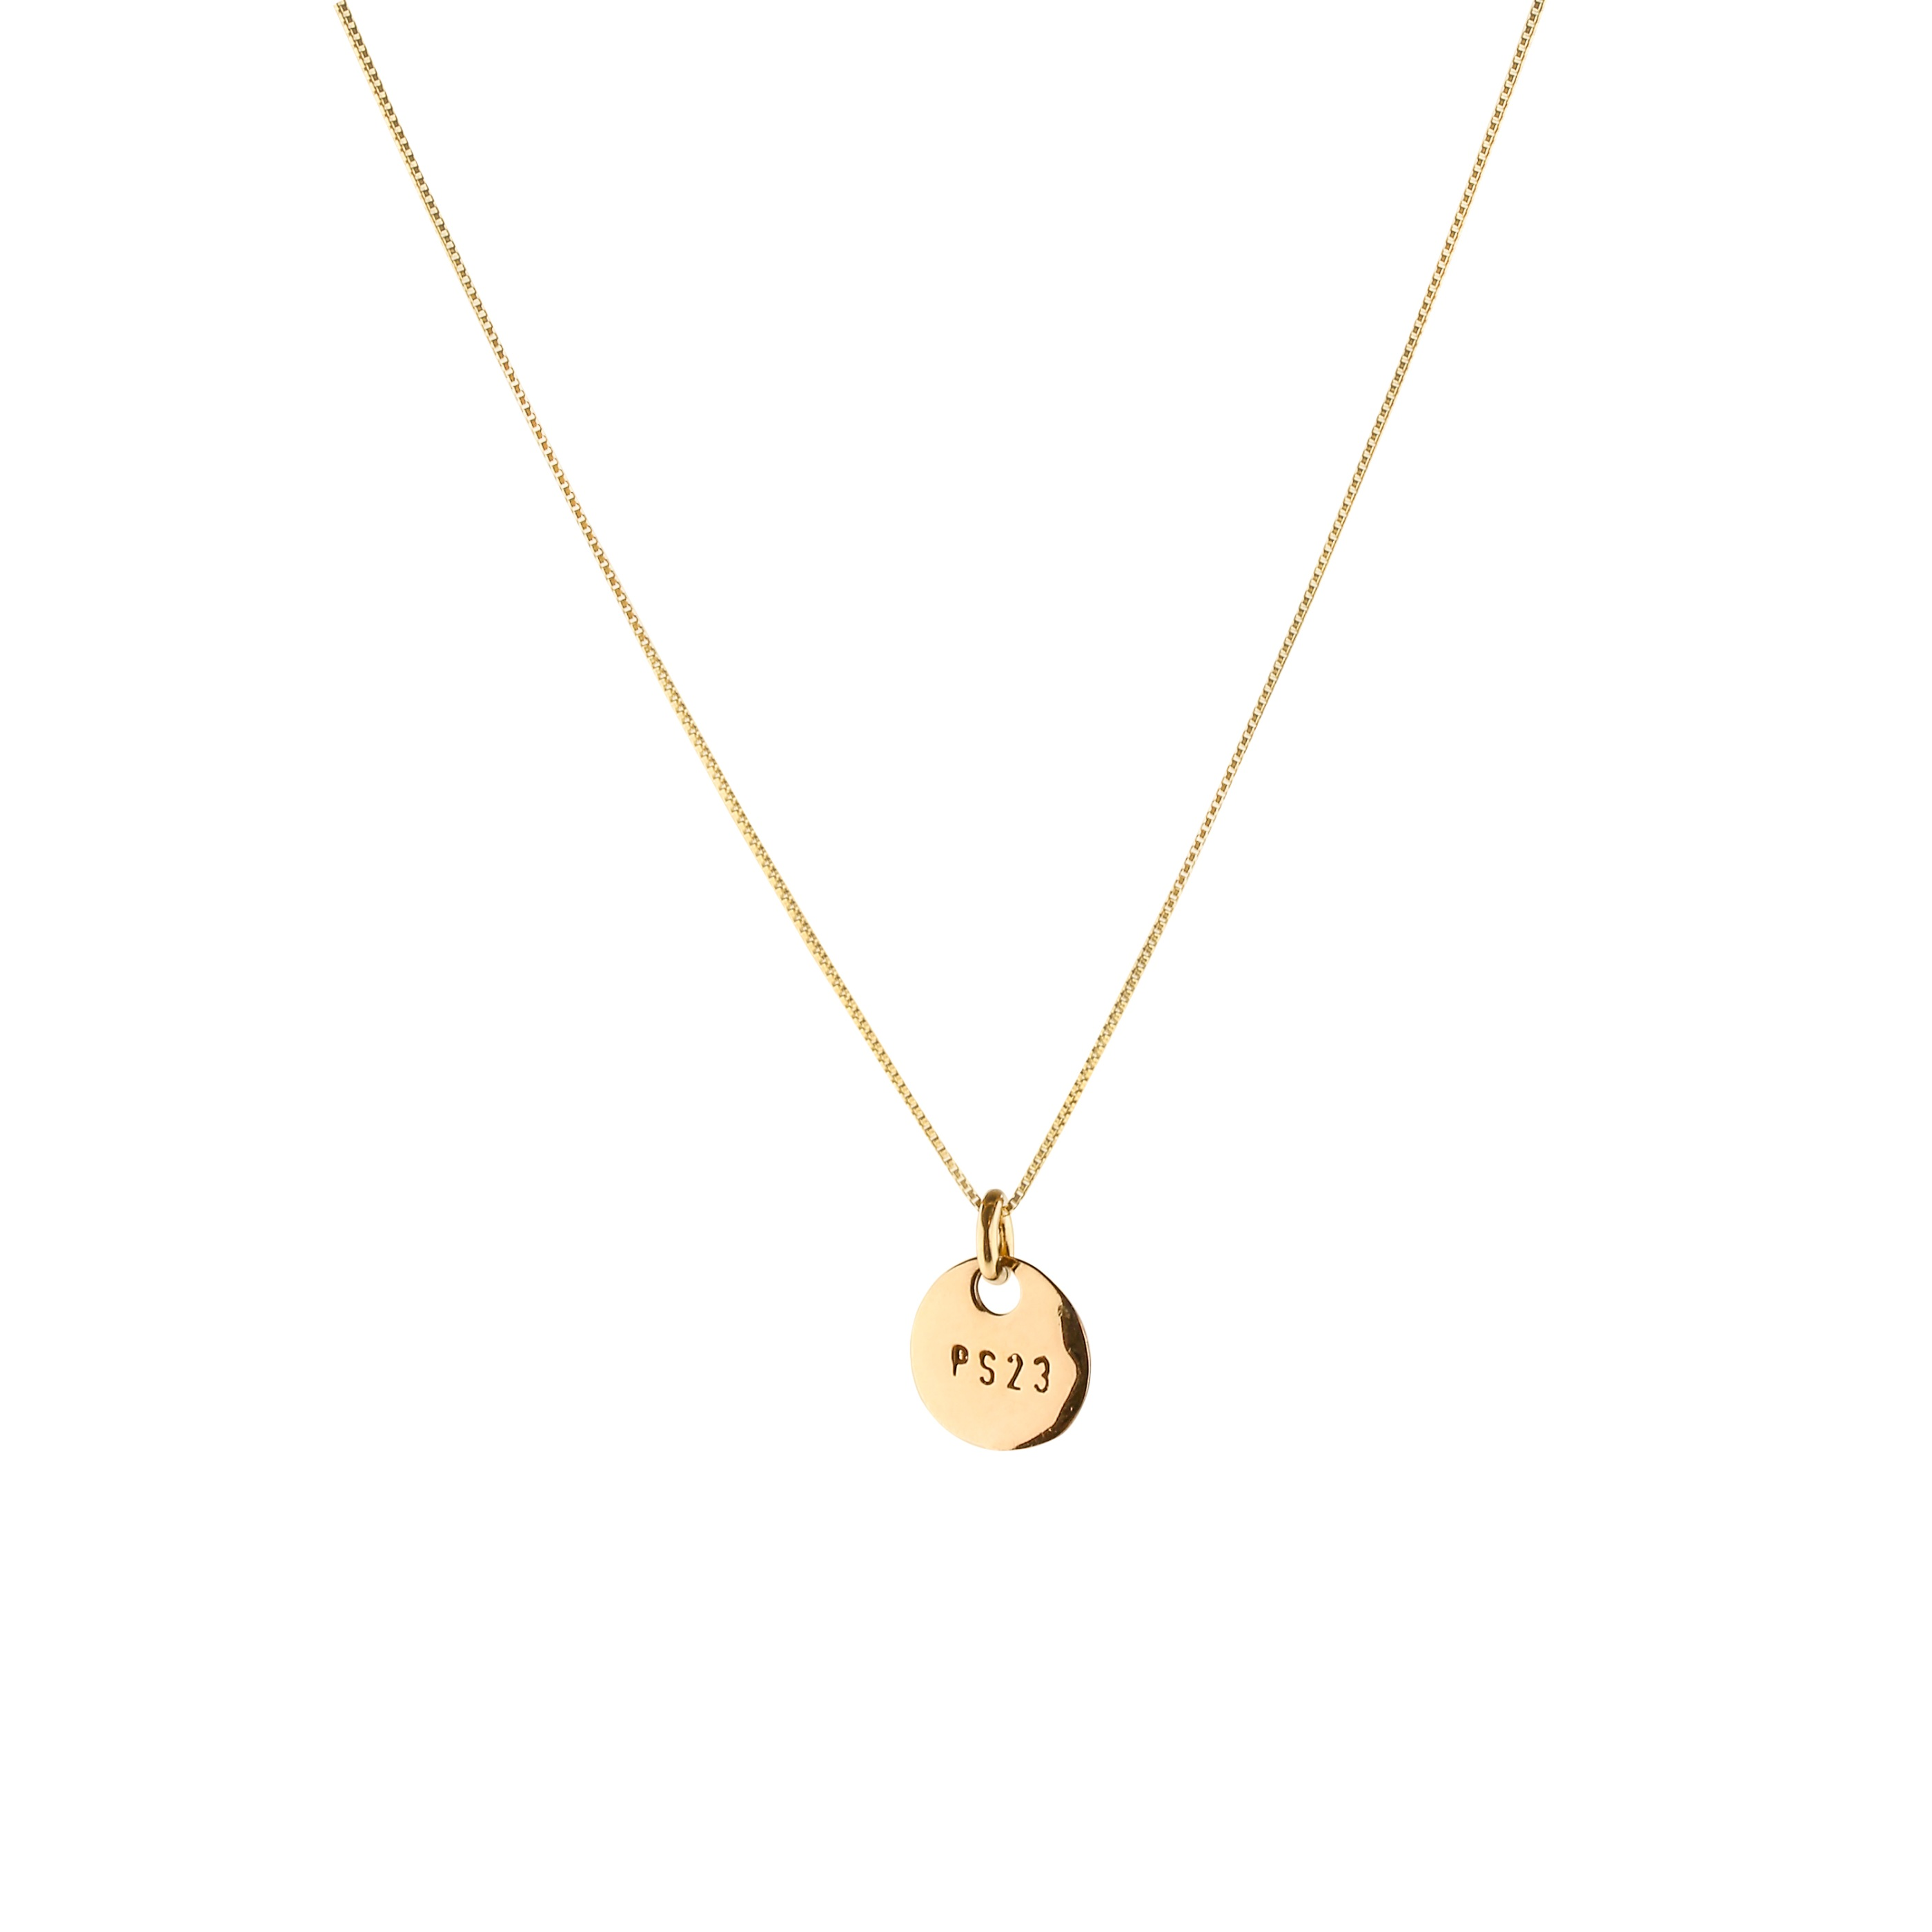 Ps23 golden bronze small coin necklace(short chain)